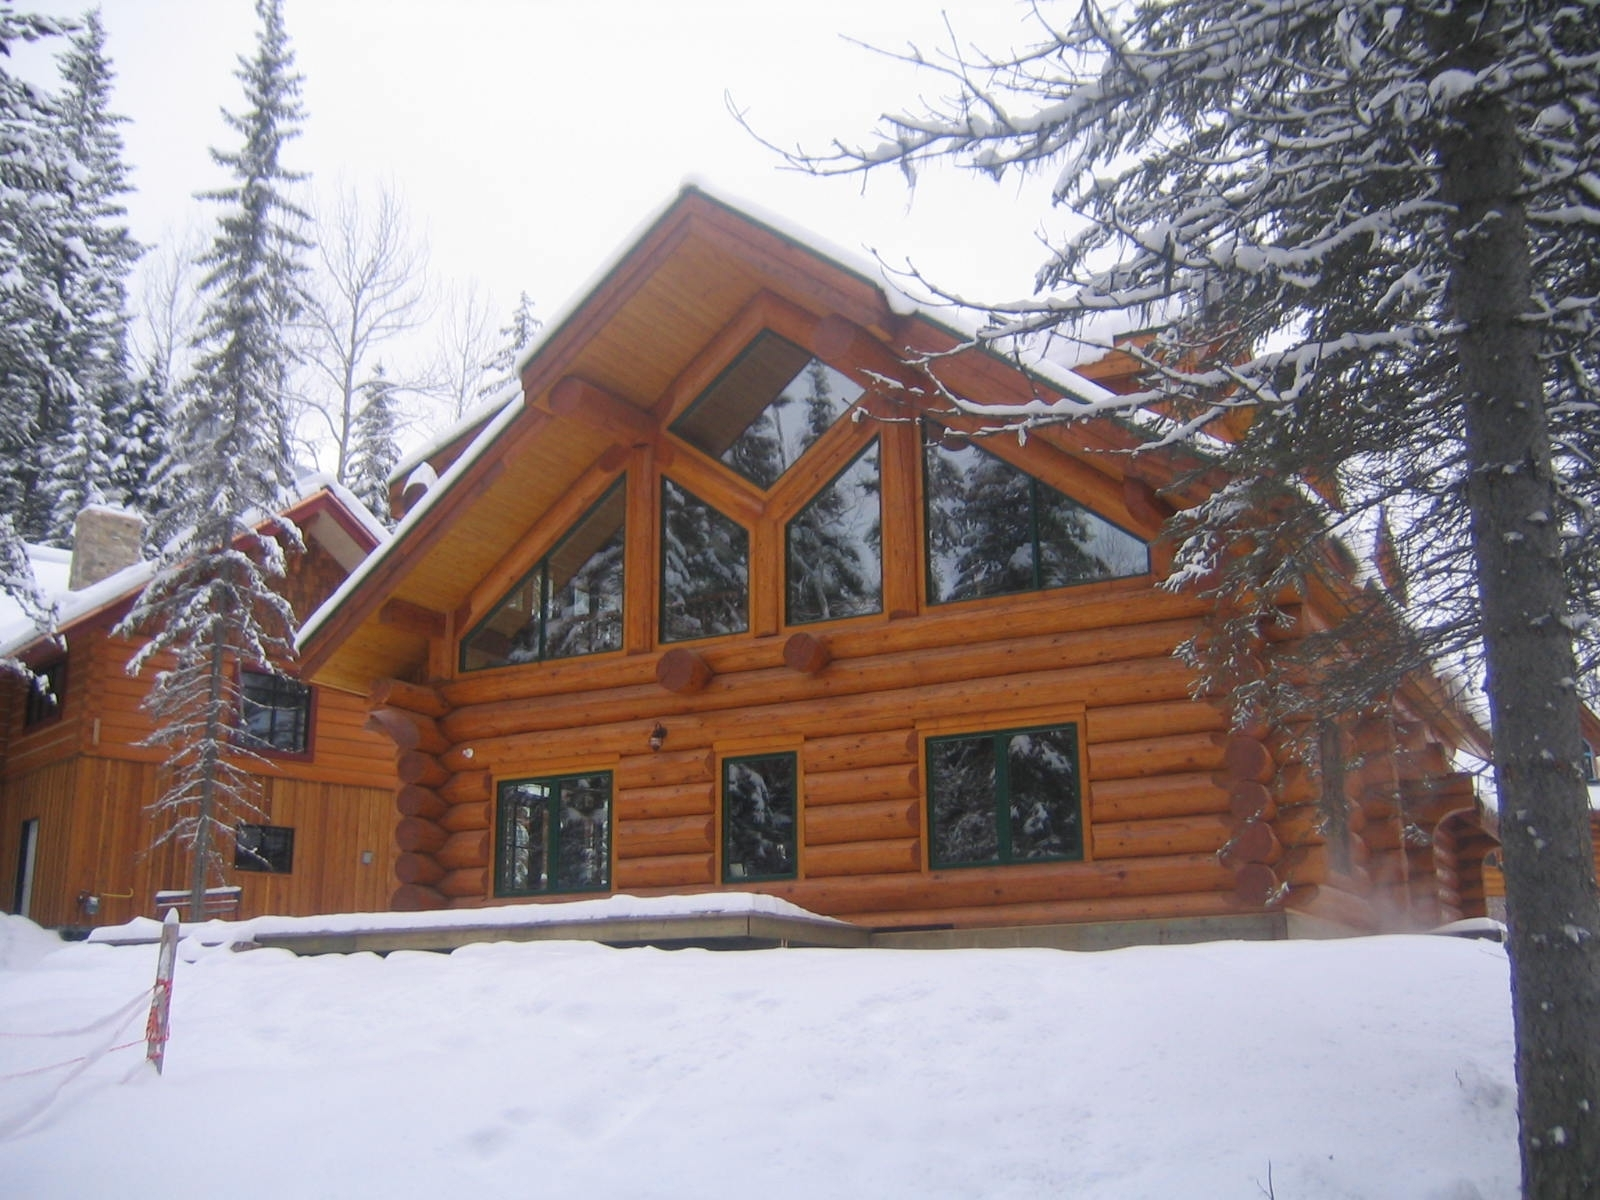 The Golden Ski Cabin